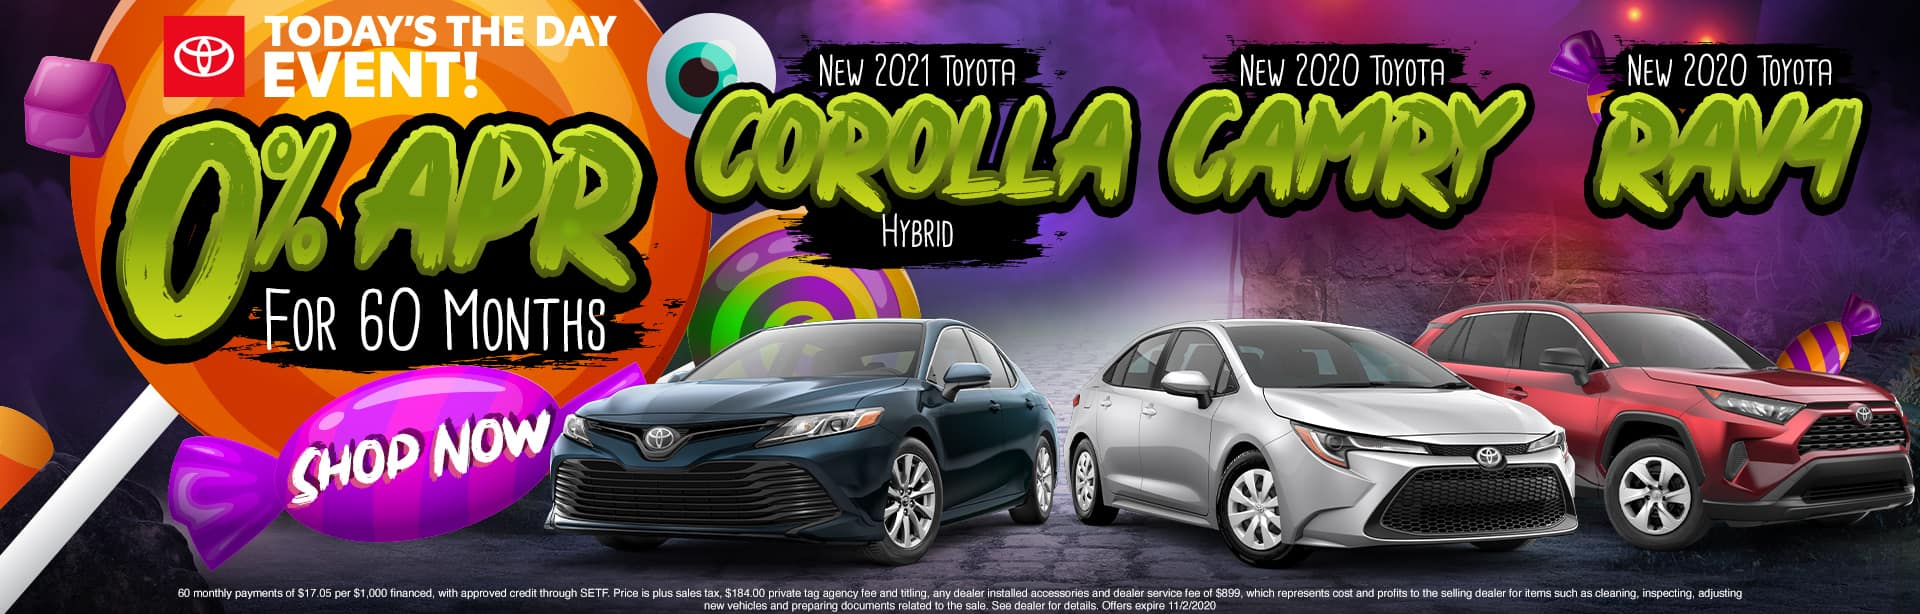 Today's The Day Event!   0% APR For 60 Months   New 2021 Toyota Corolla Hybrid, New 2020 Toyota Camry, New 2020 Toyota RAV4